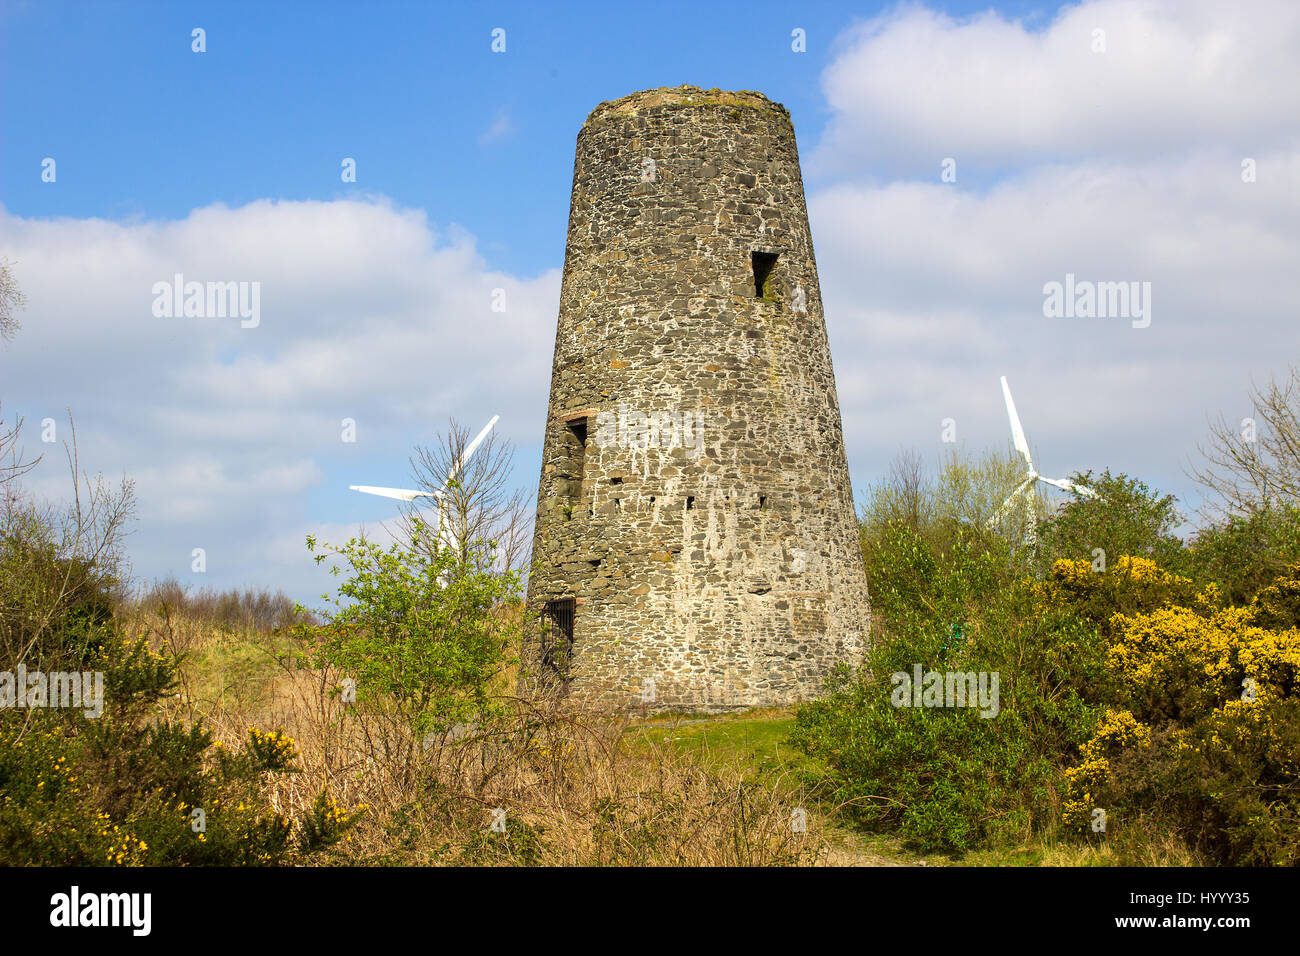 An old windmill stump in a 19th century lead mines with modern wind turbine vanes in the background in Conlig Northern - Stock Image